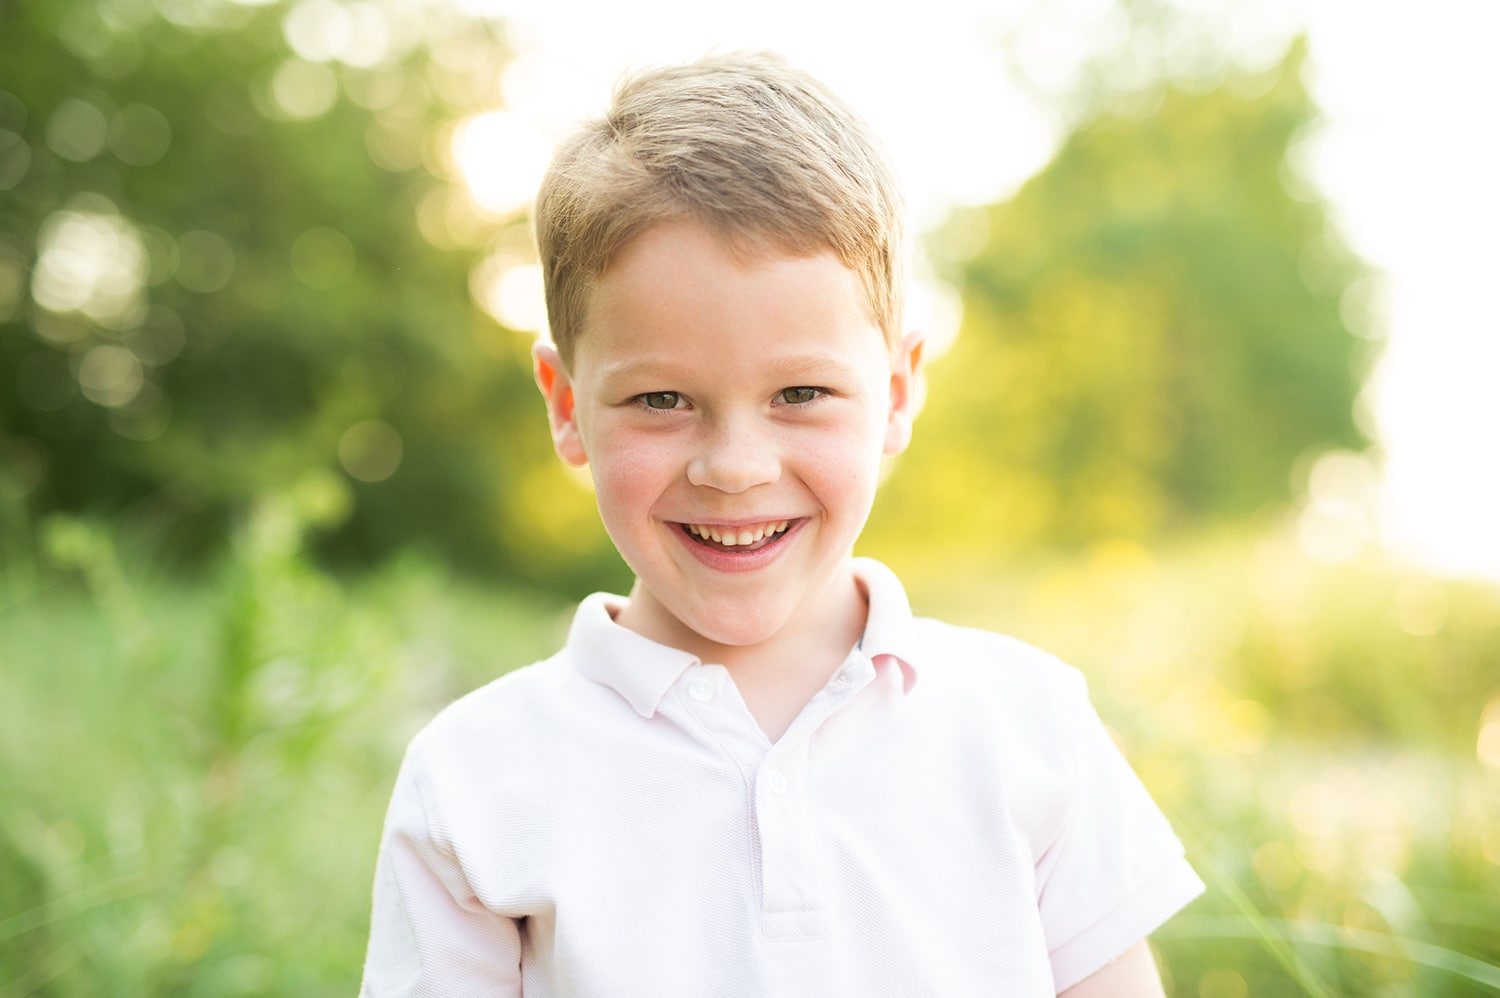 Little boy smiling with grass and trees behind him lit up by the sun.